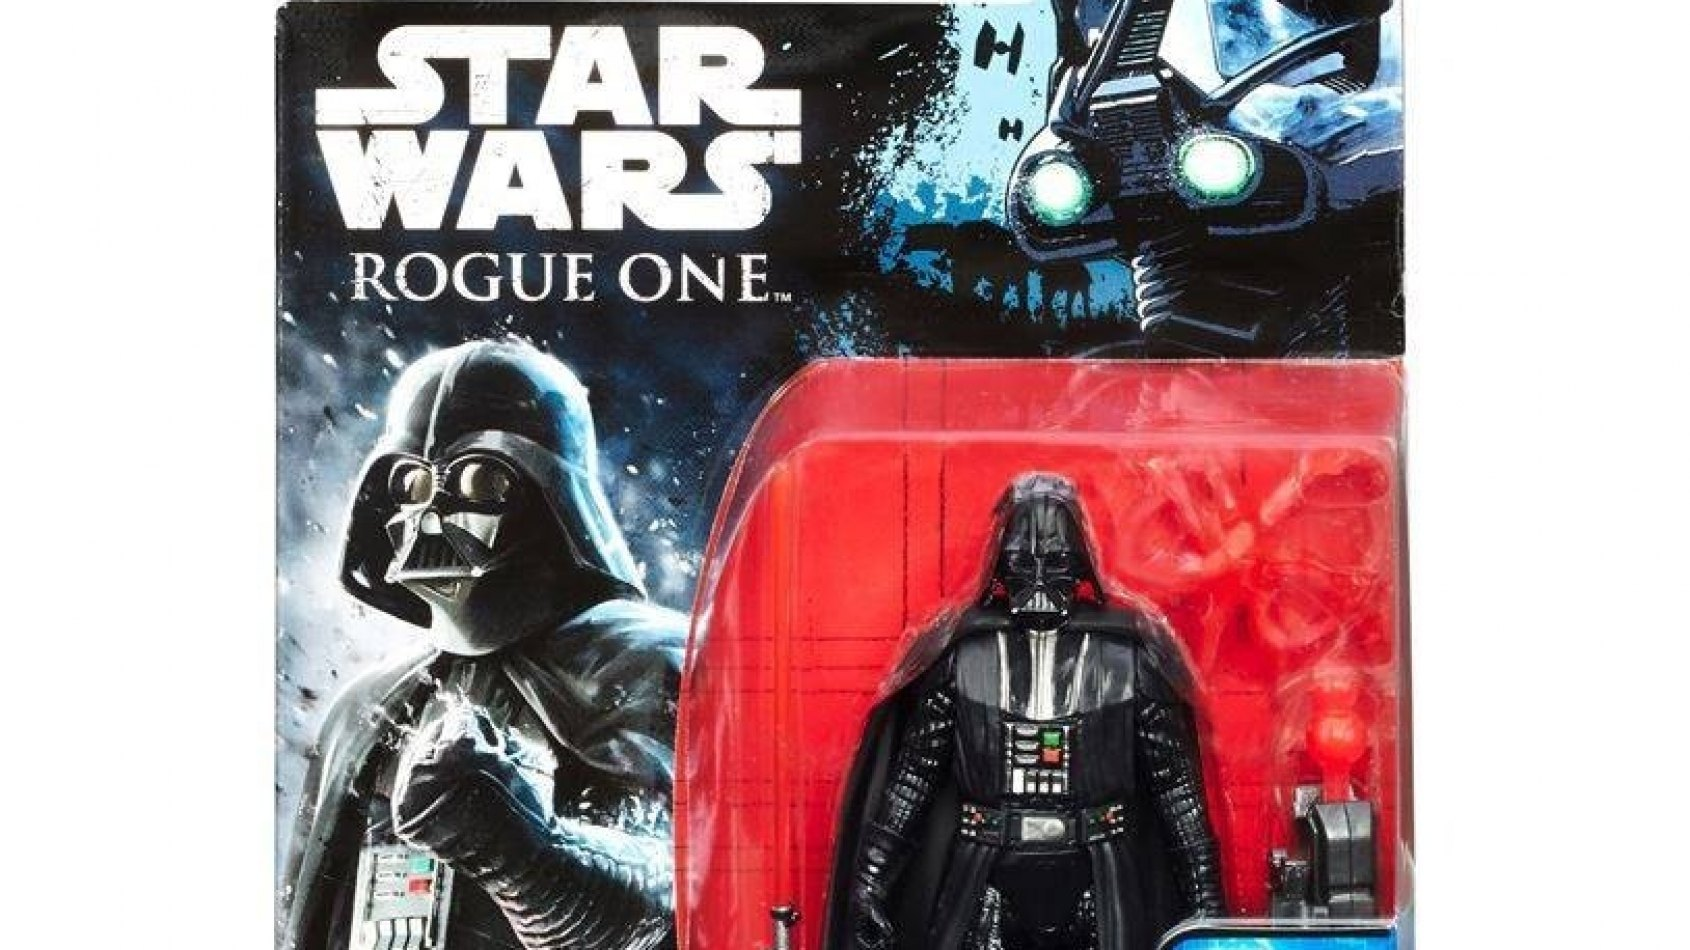 La vague 2 des Figurines Rogue One par Hasbro